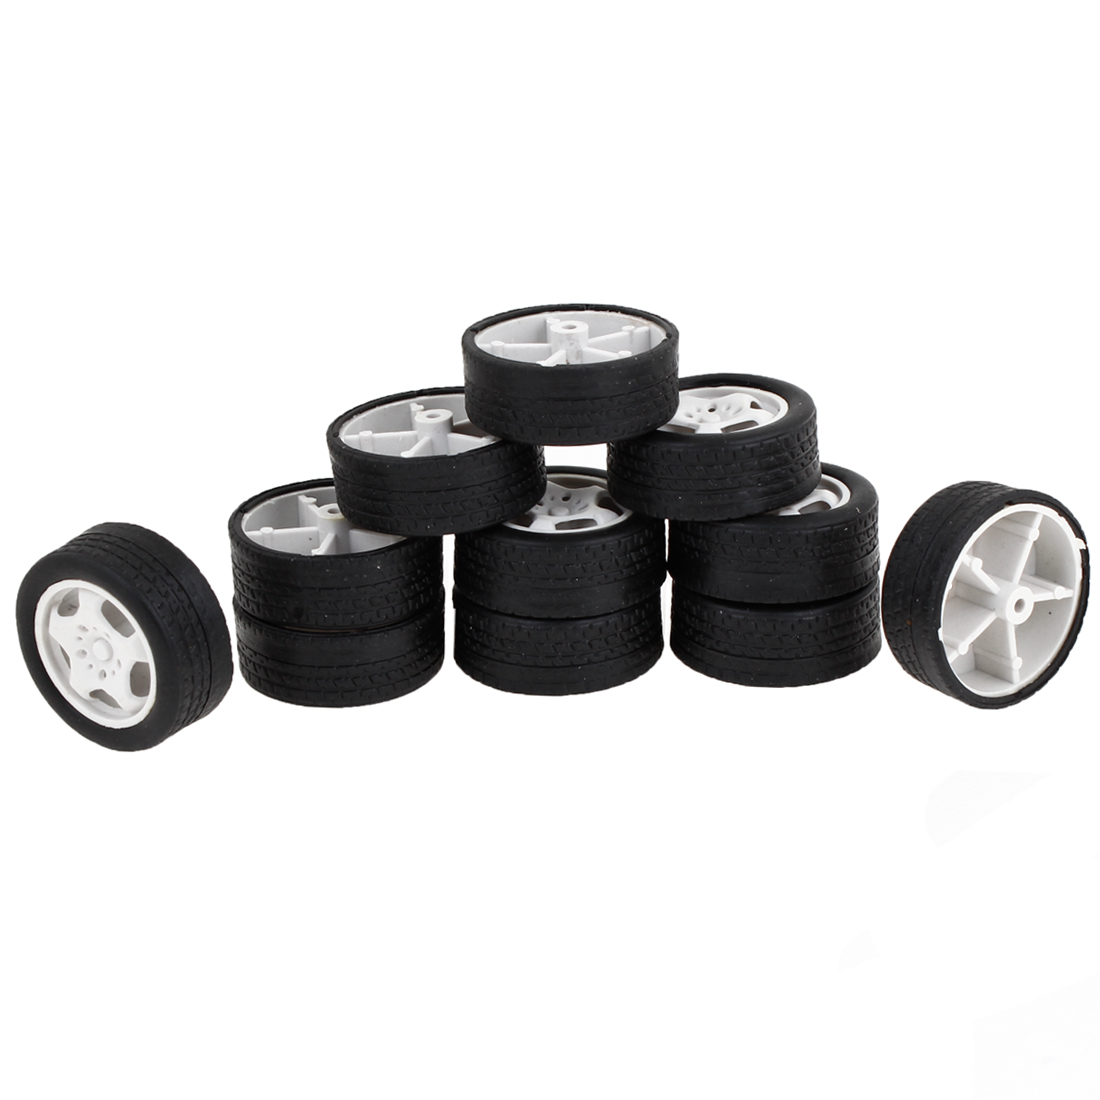 11PCS 34mm Dia Black Rubber Roll White Plastic Core Kids Toy Vehicles Car Wheels